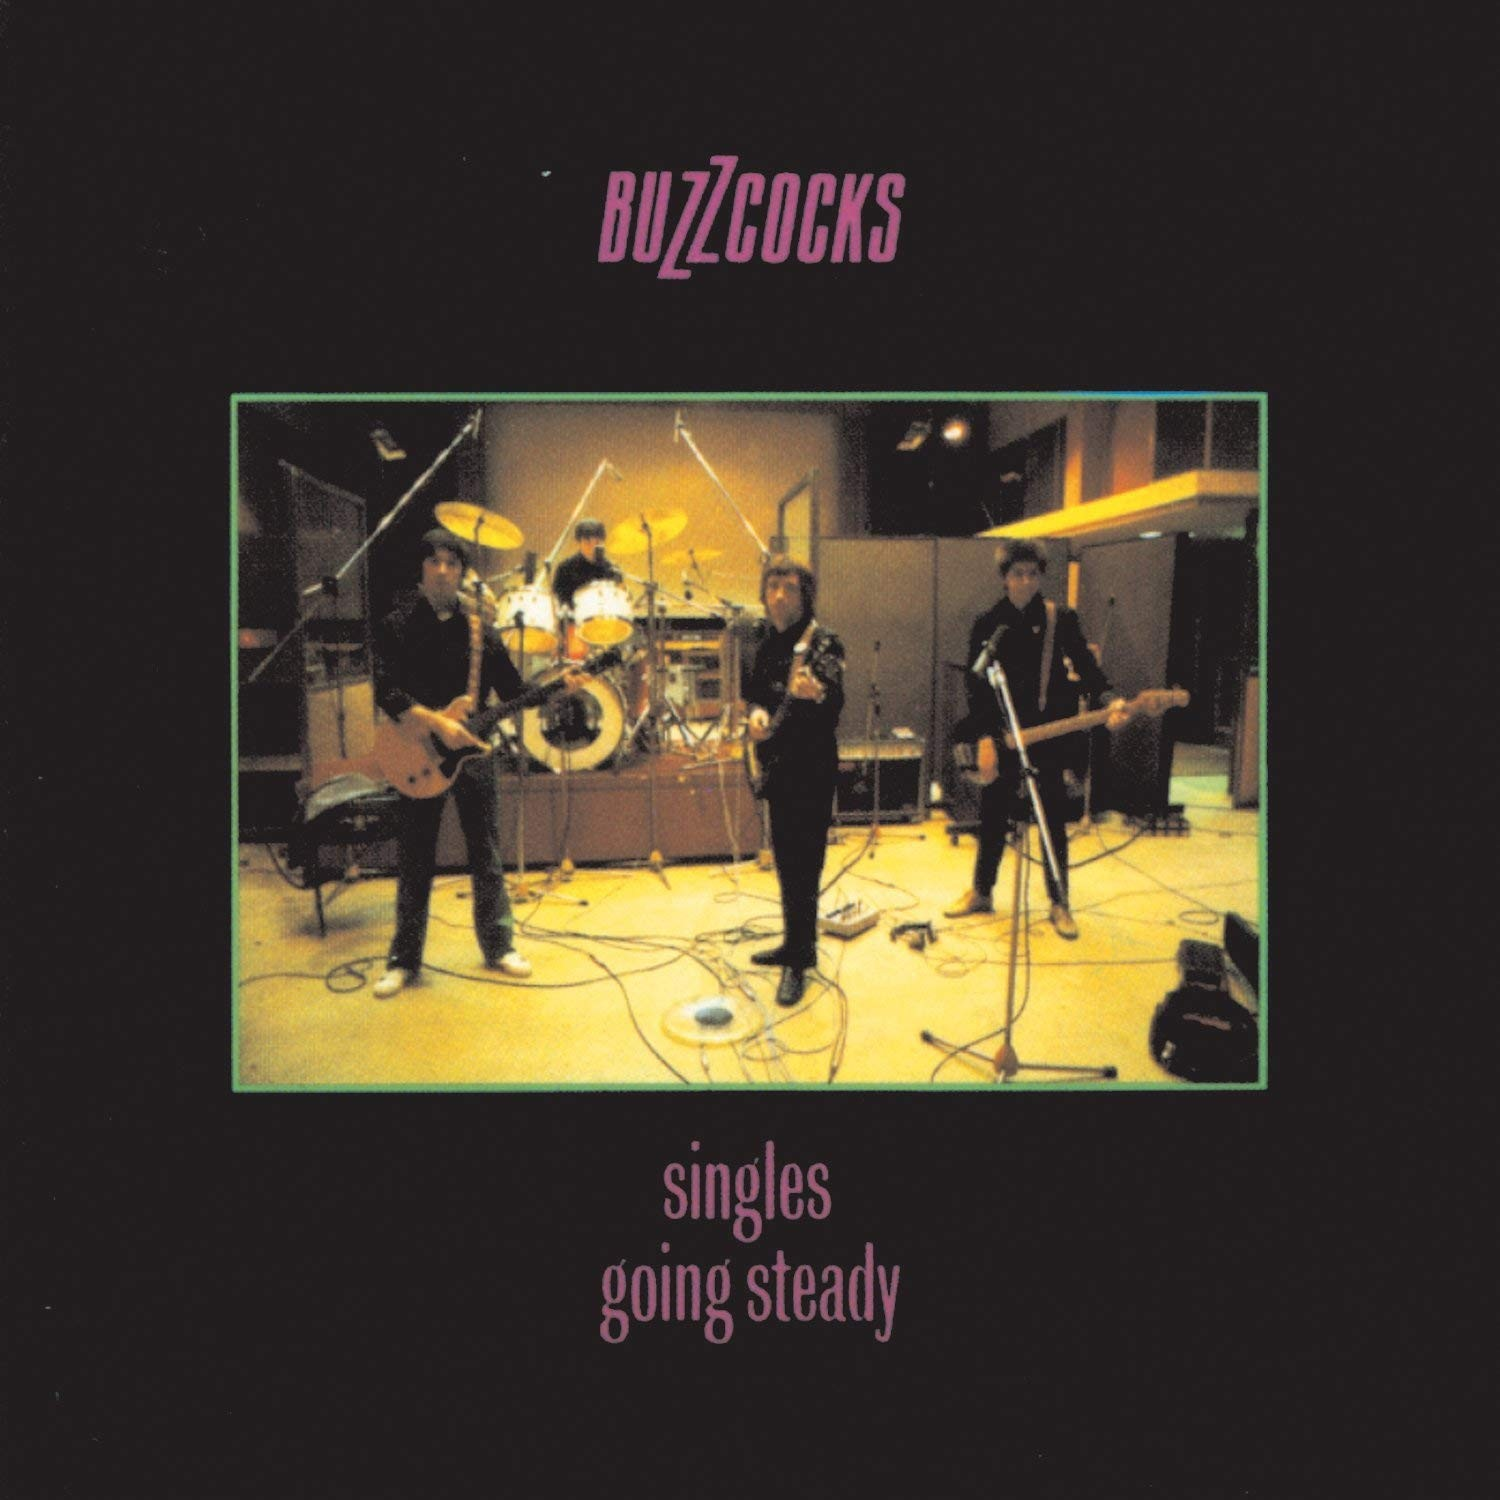 Buzzcocks - Singles Going Steady LP